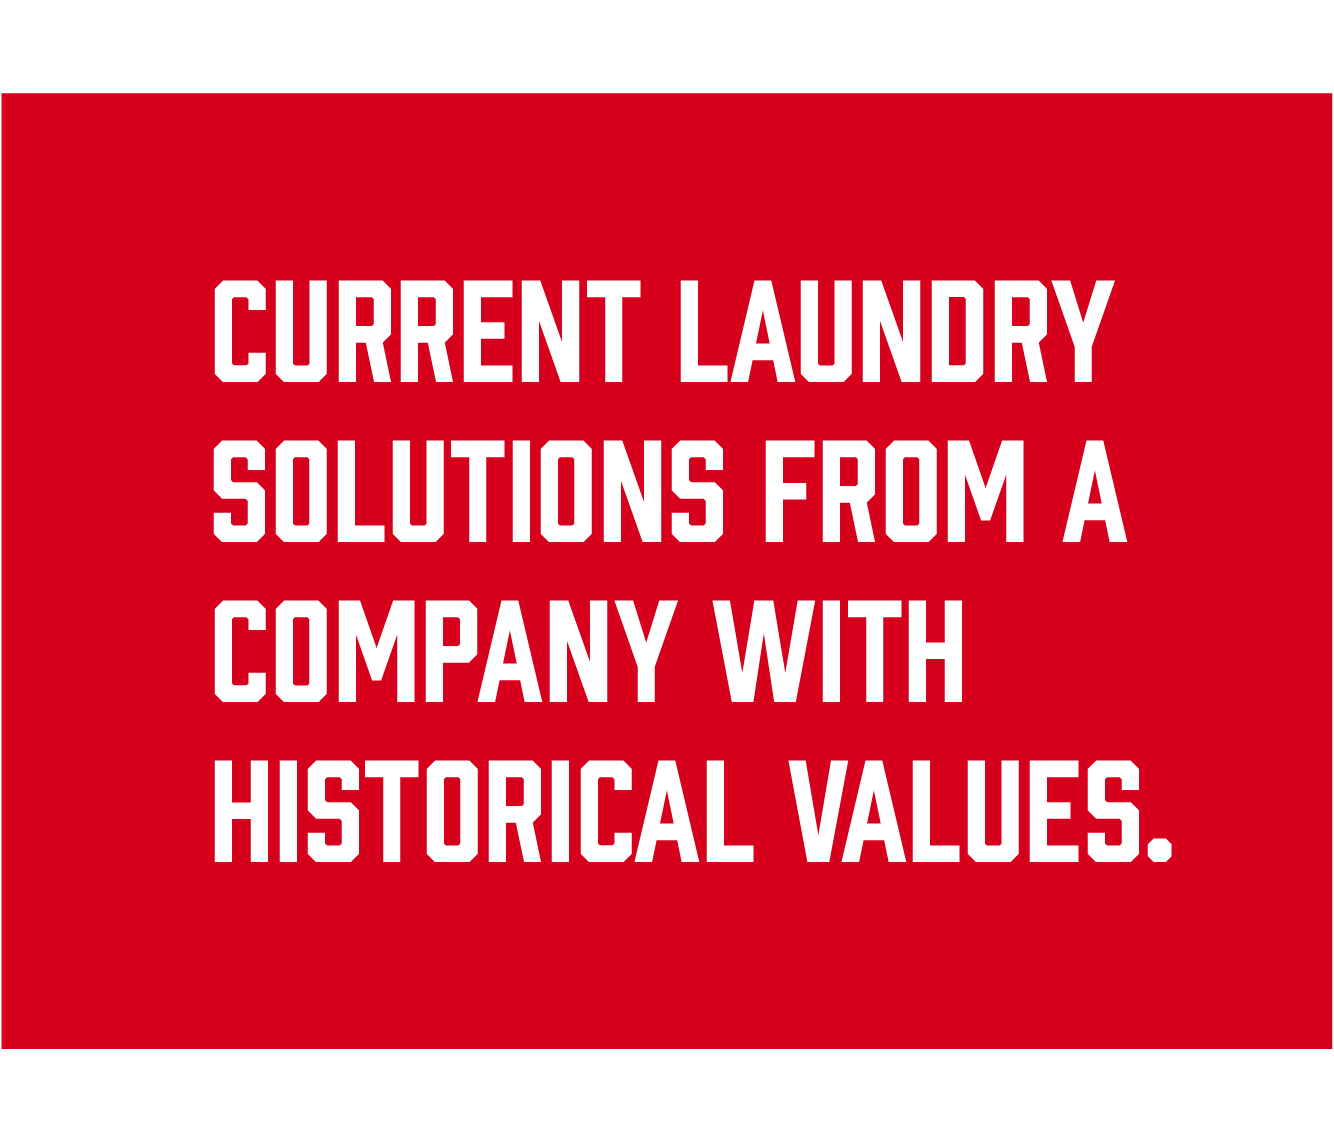 Current laundry solutions from a company with historic values.